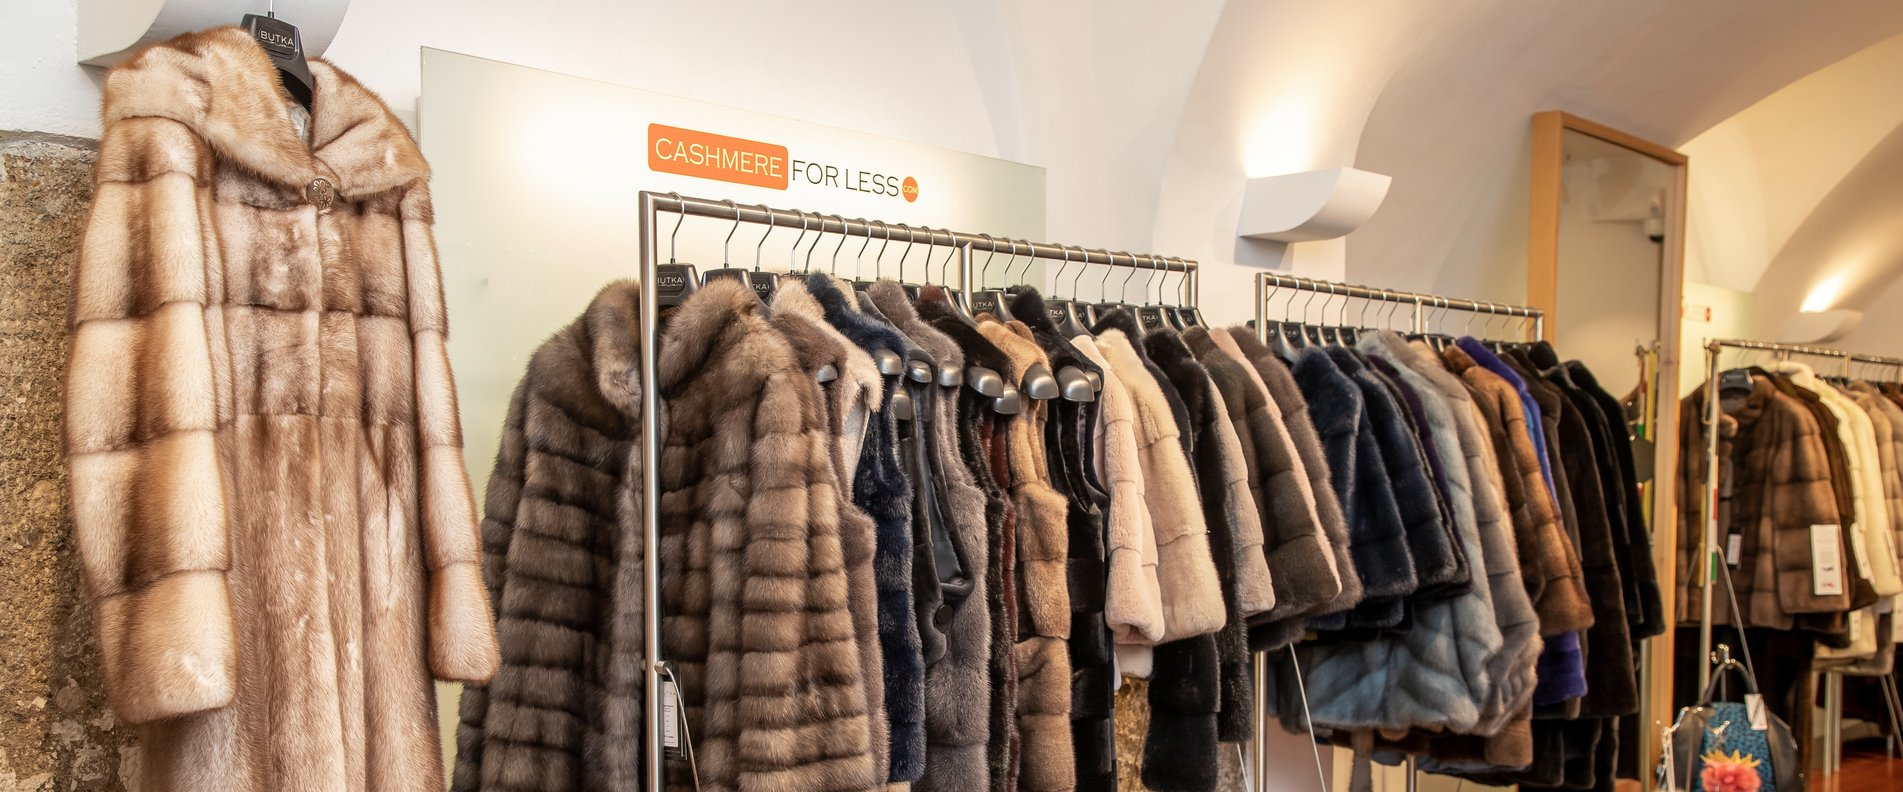 Furs for less | © Andreas Kolarik